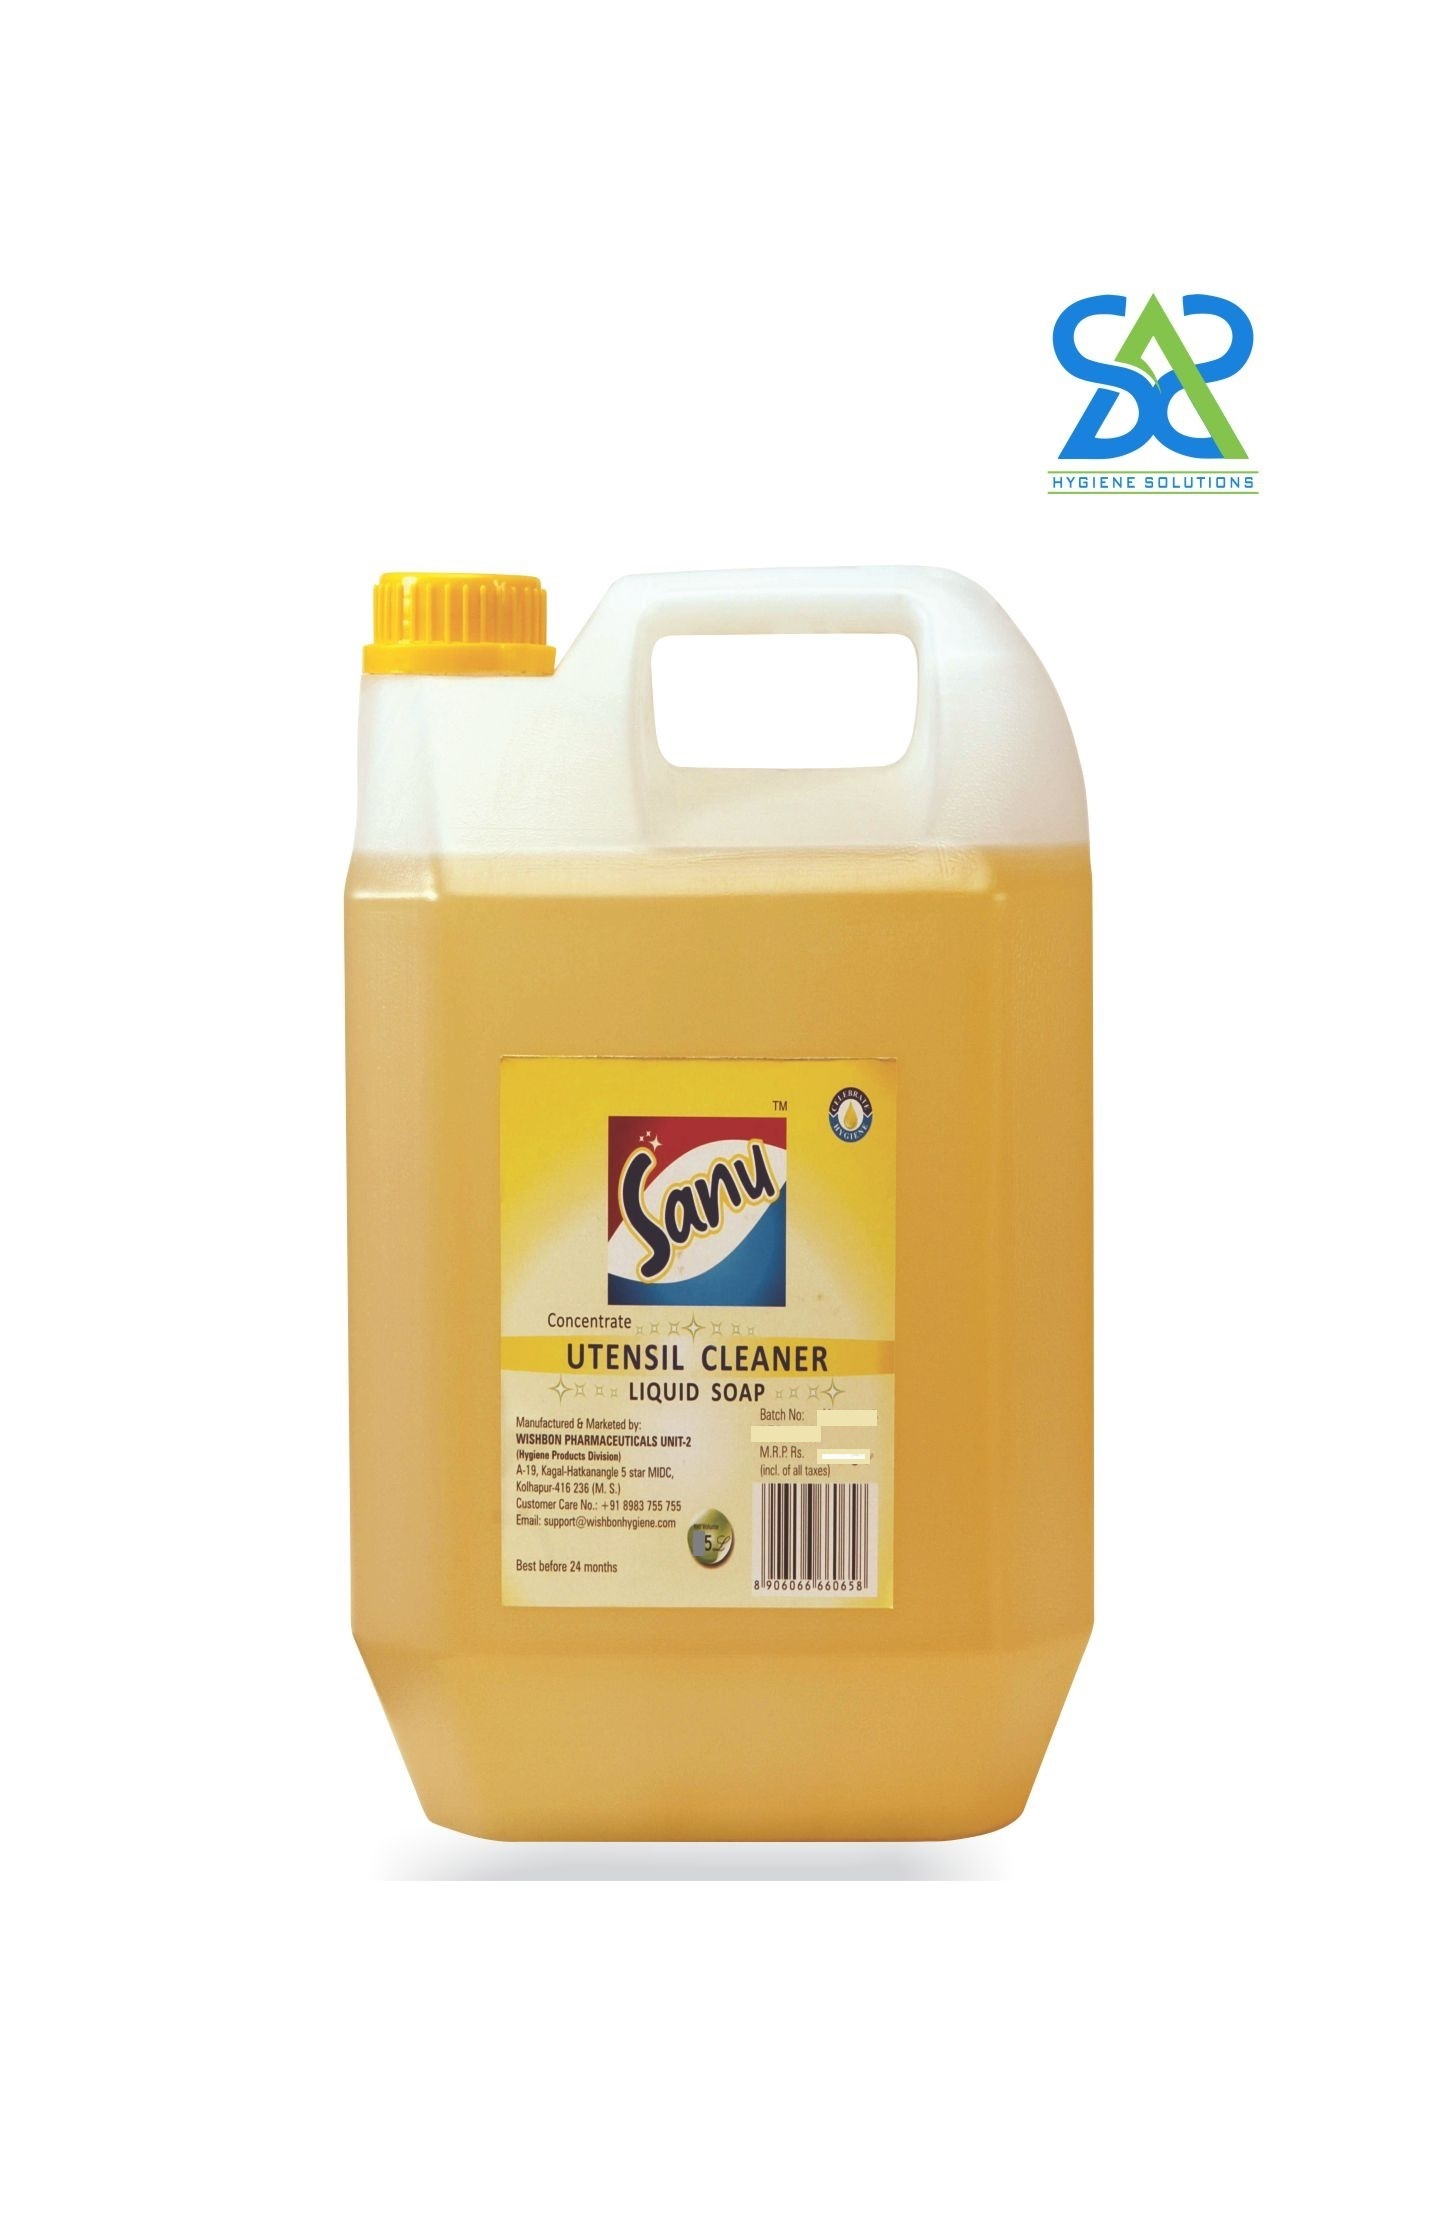 Sanu Utensil Cleaner Concentrate - 5 Litres